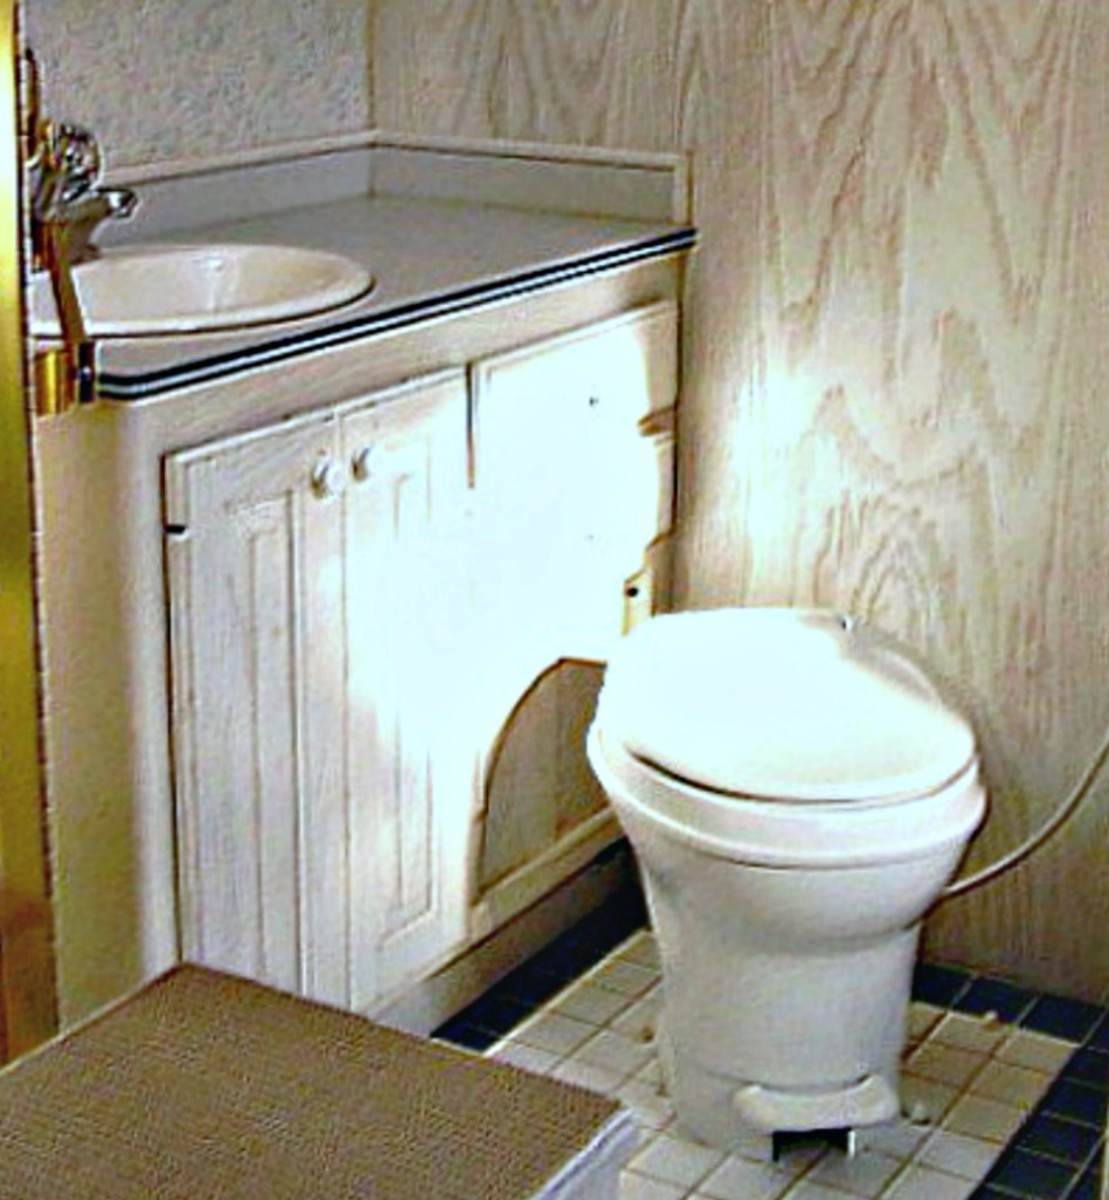 Leaky toilets can cause a great deal of water damage which can lead to smelly mold and mildew problems if not addressed quickly.